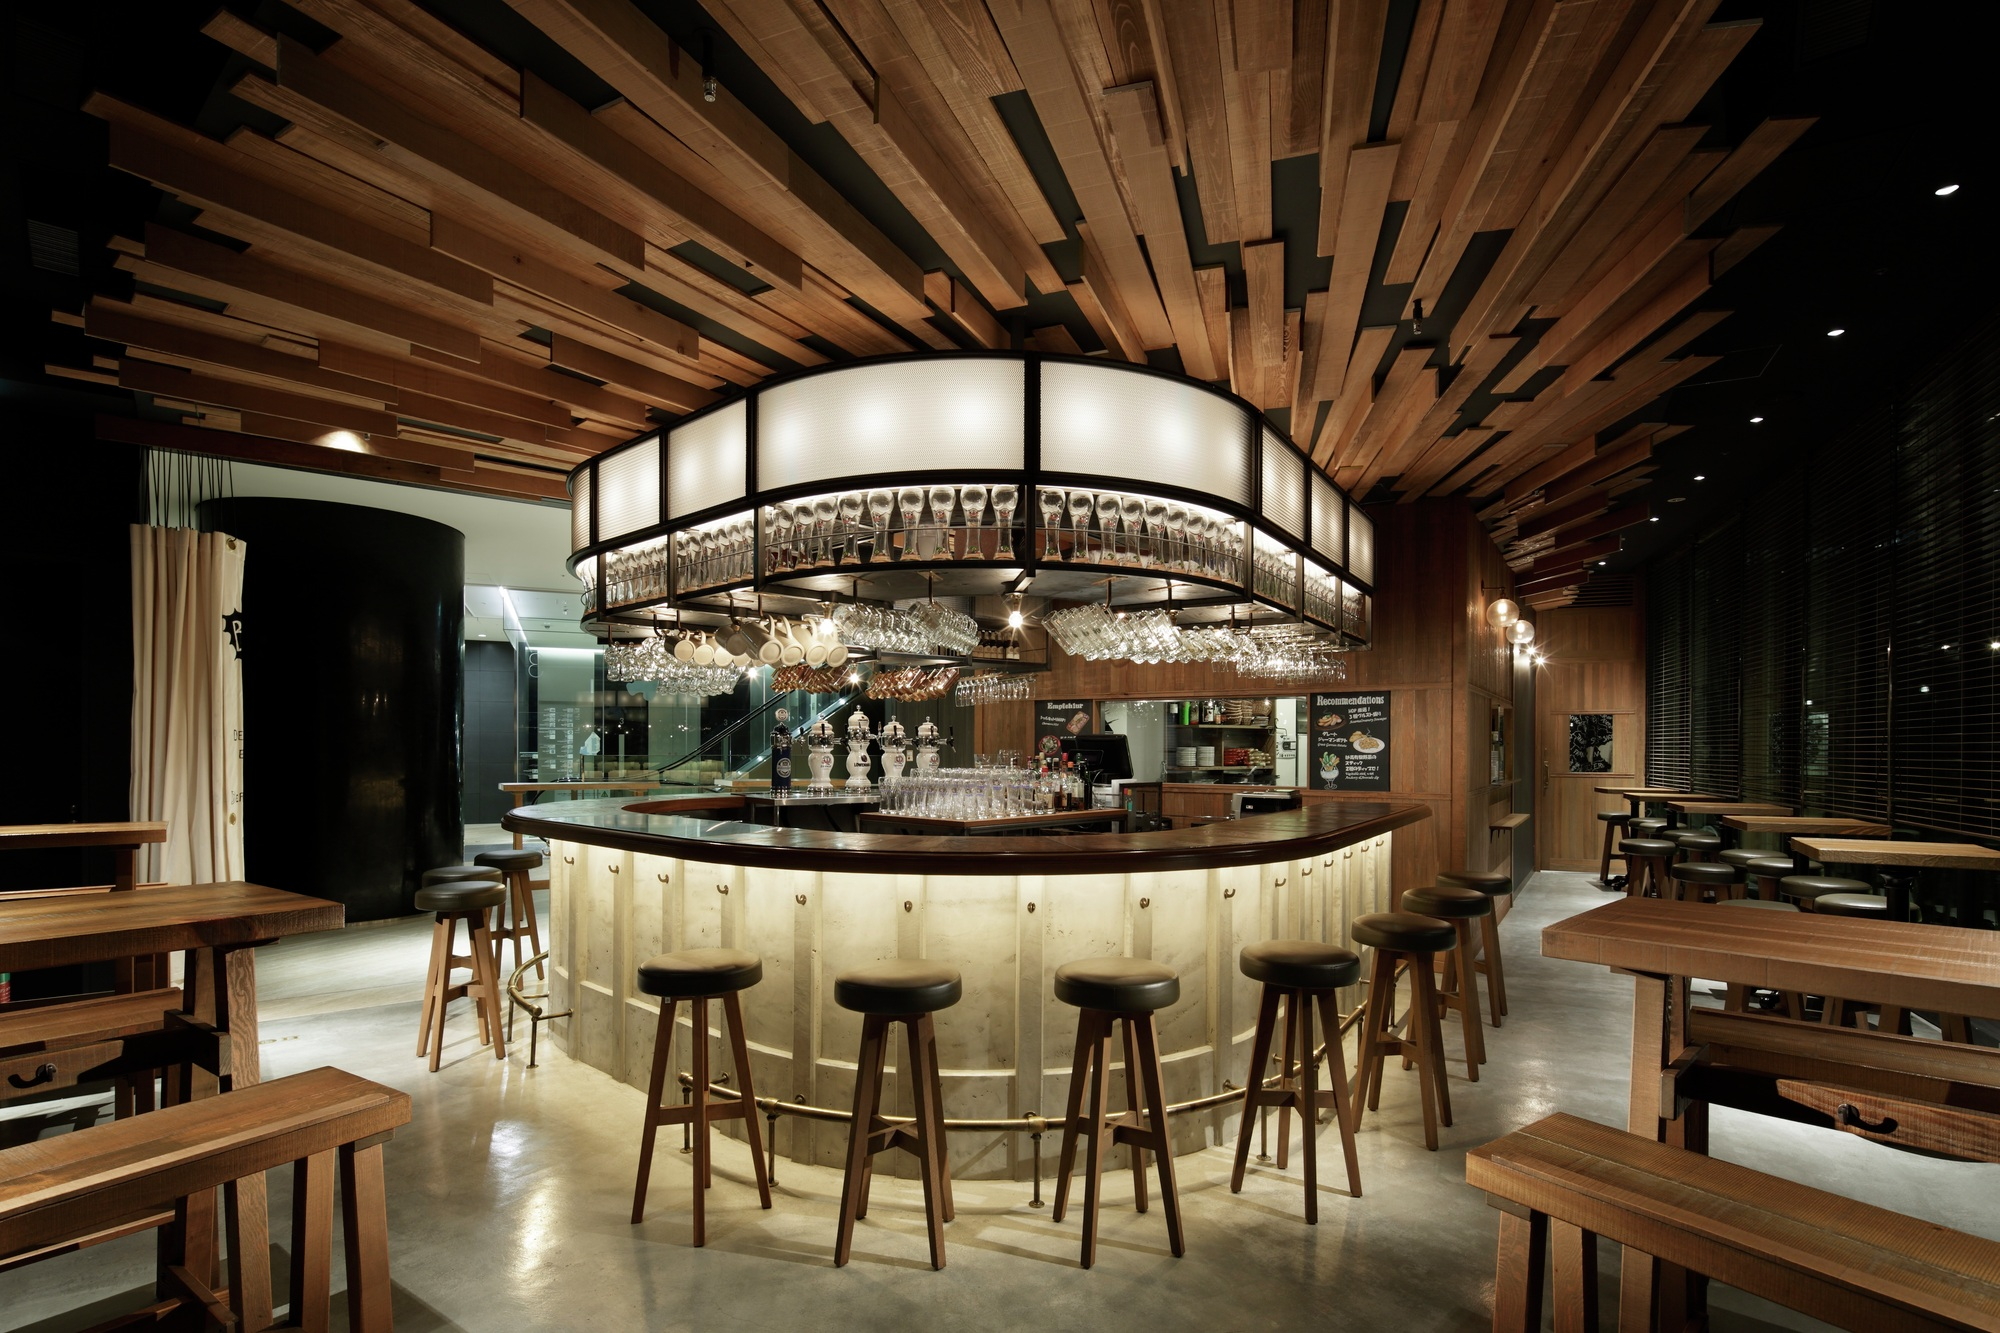 Image Courtesy of The Restaurant & Bar Design Awards